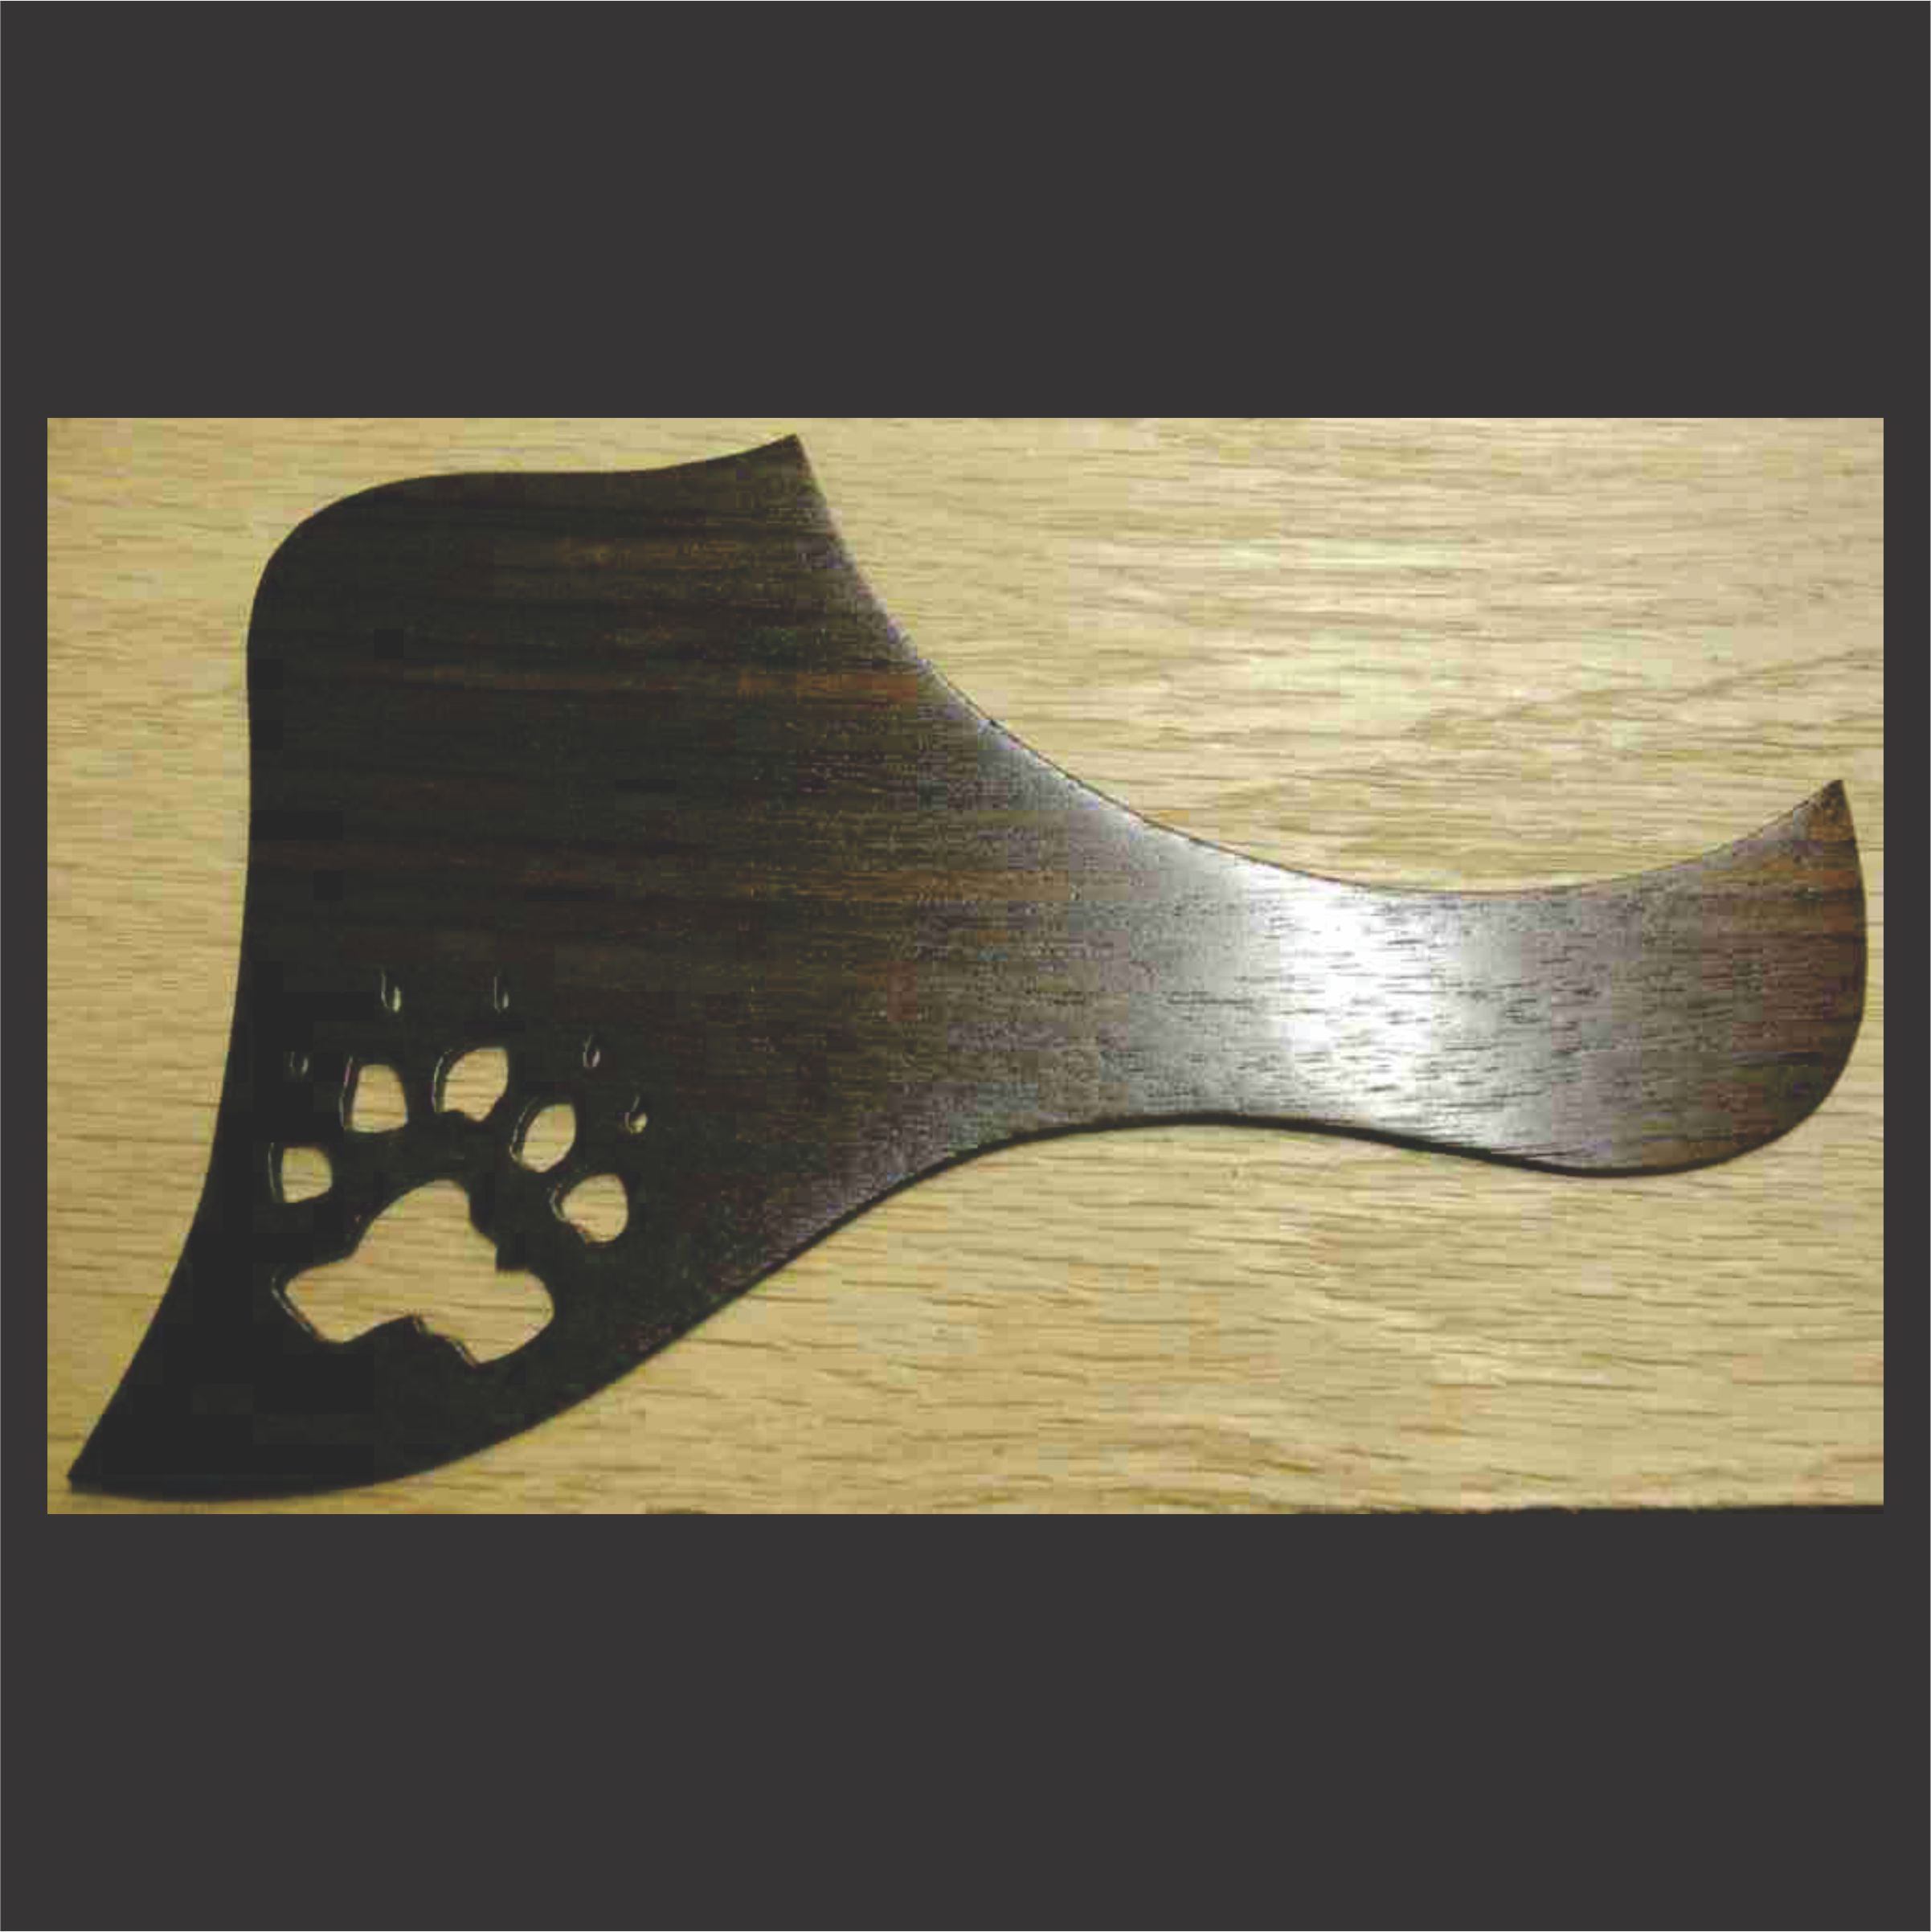 Rosewood Pickguard With Graphic Engraving And Cut Out